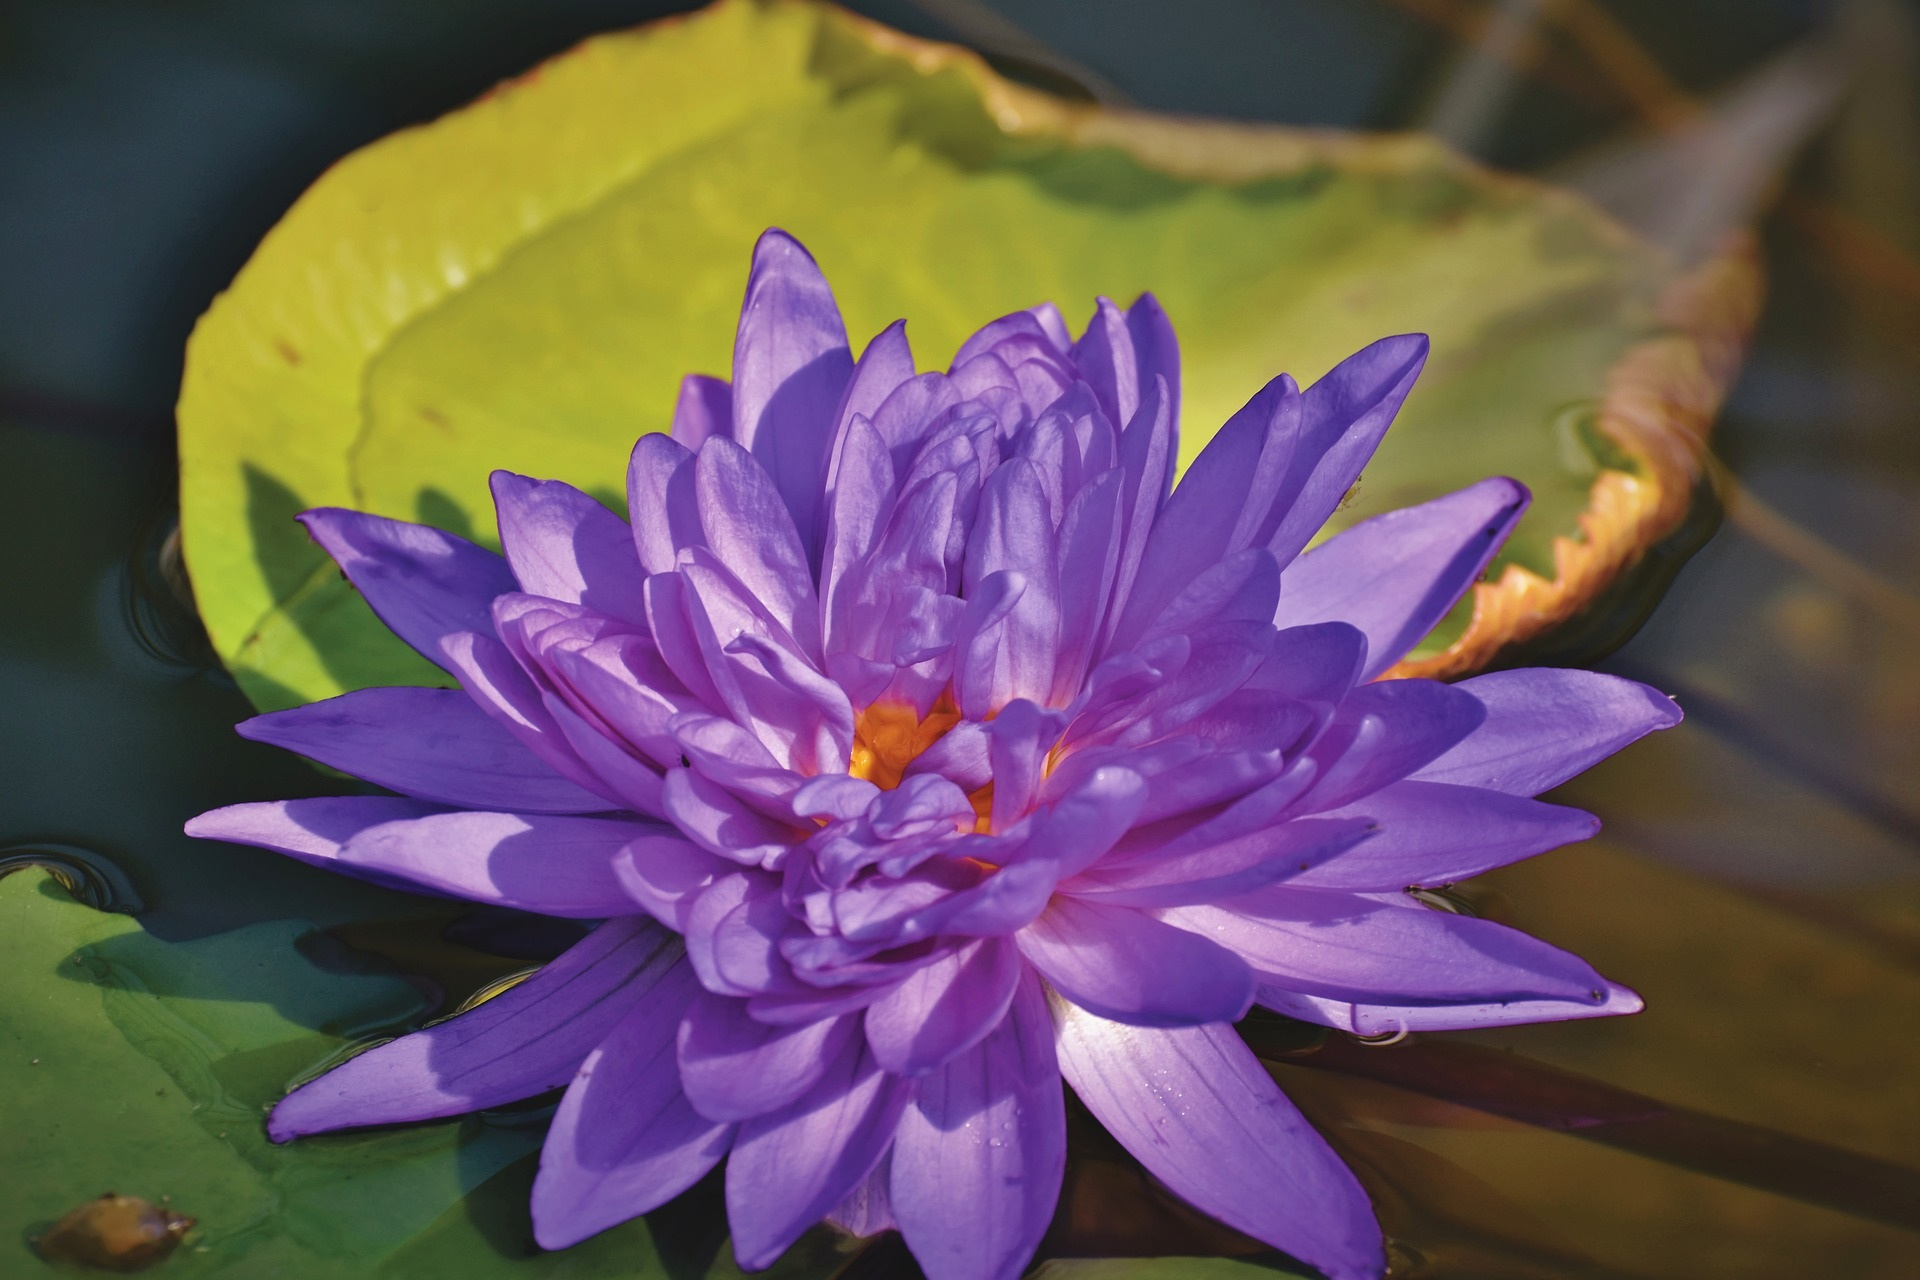 water-lily-4329926_1920.jpg